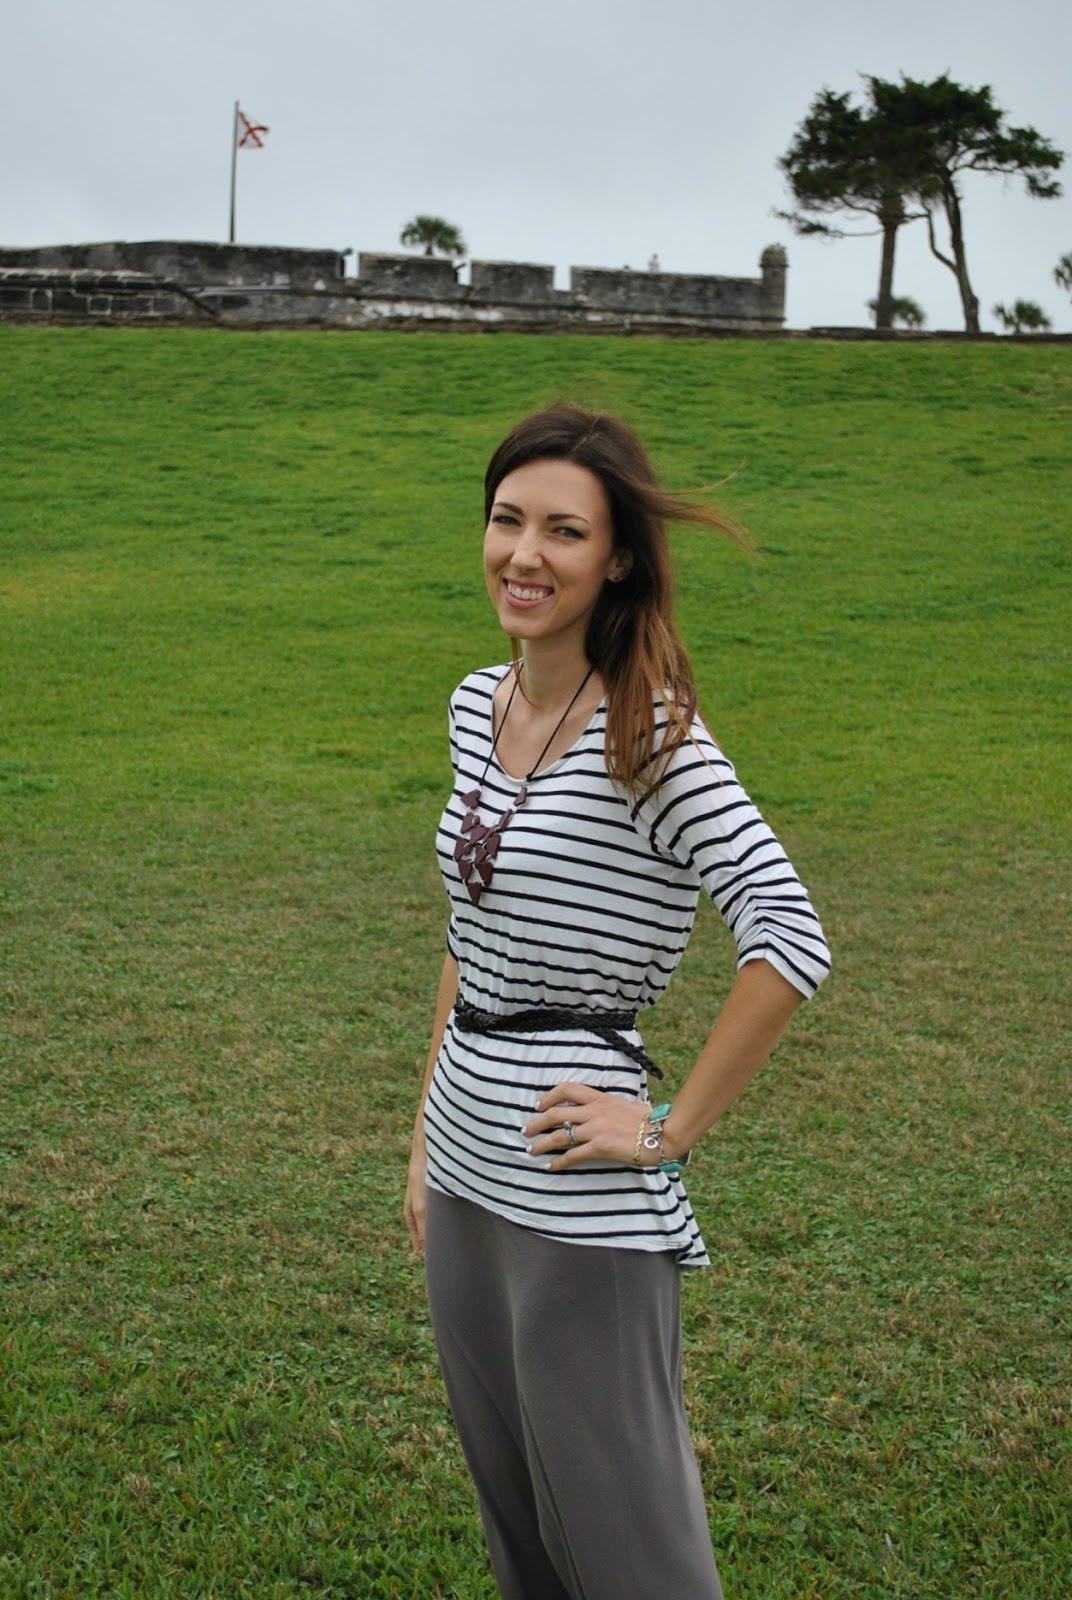 Fashion in St. Augustine at Castillo de San Marcos, outfit of the day